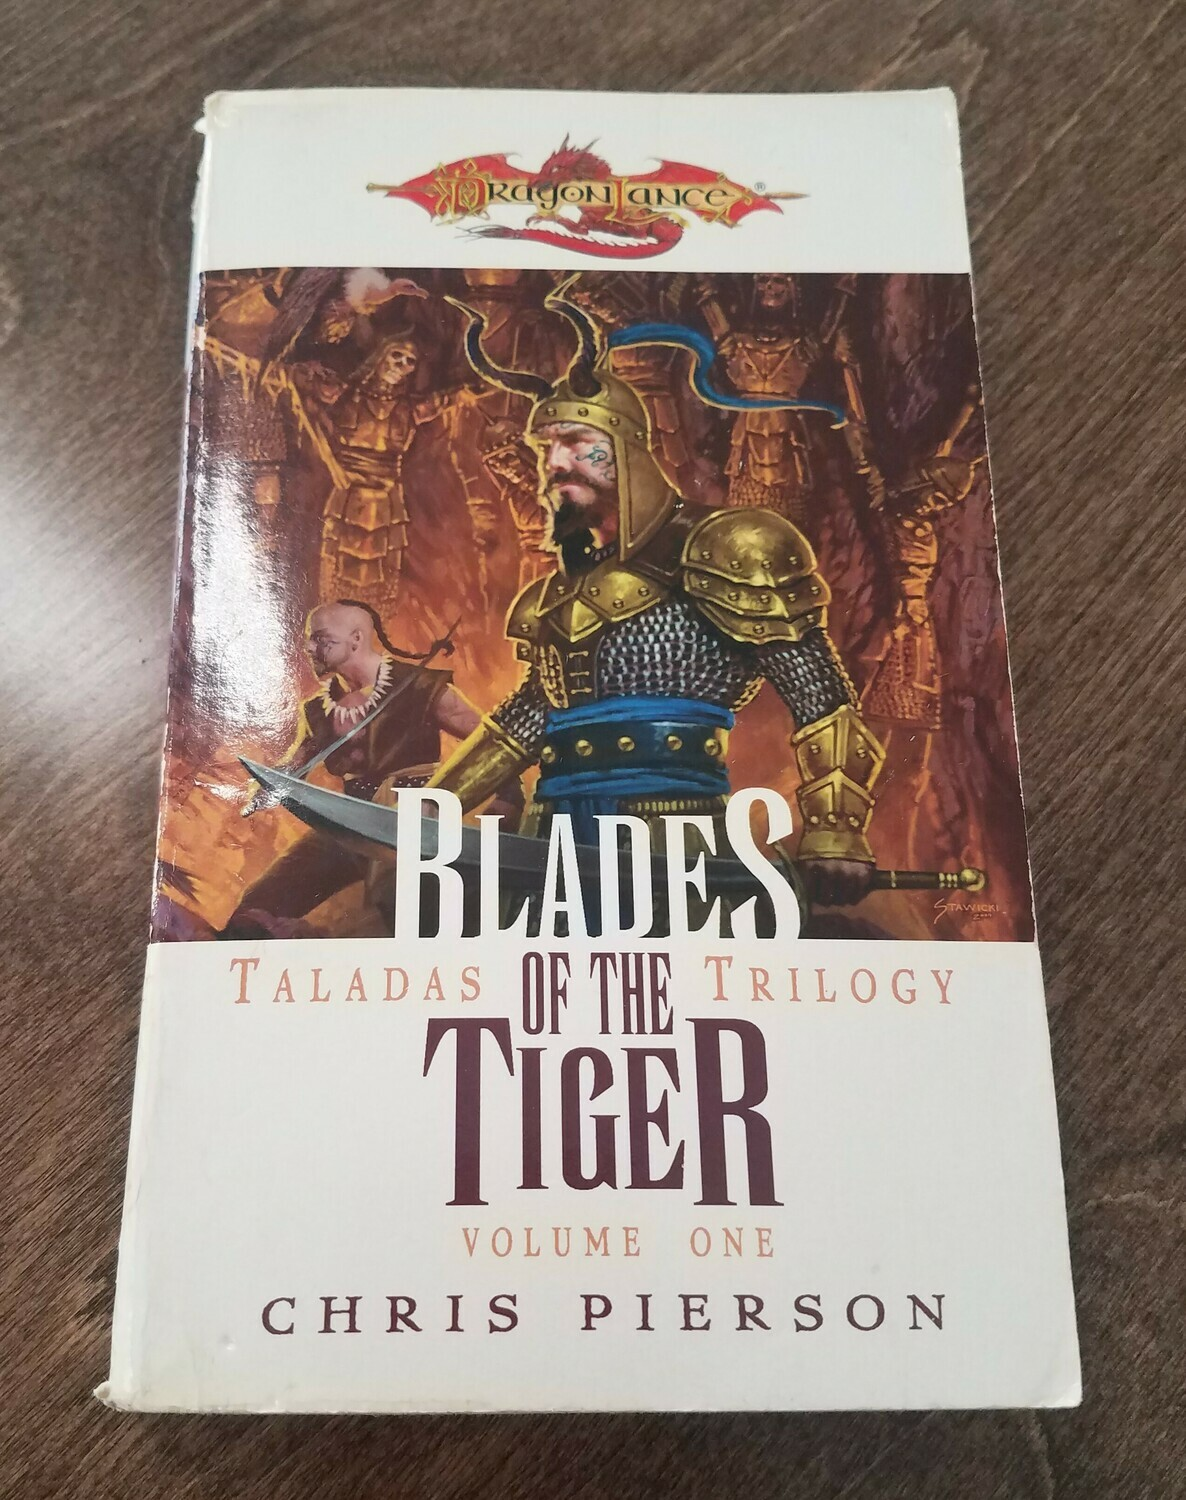 Dragon Lance: Blades of the Tiger by Chris Pierson